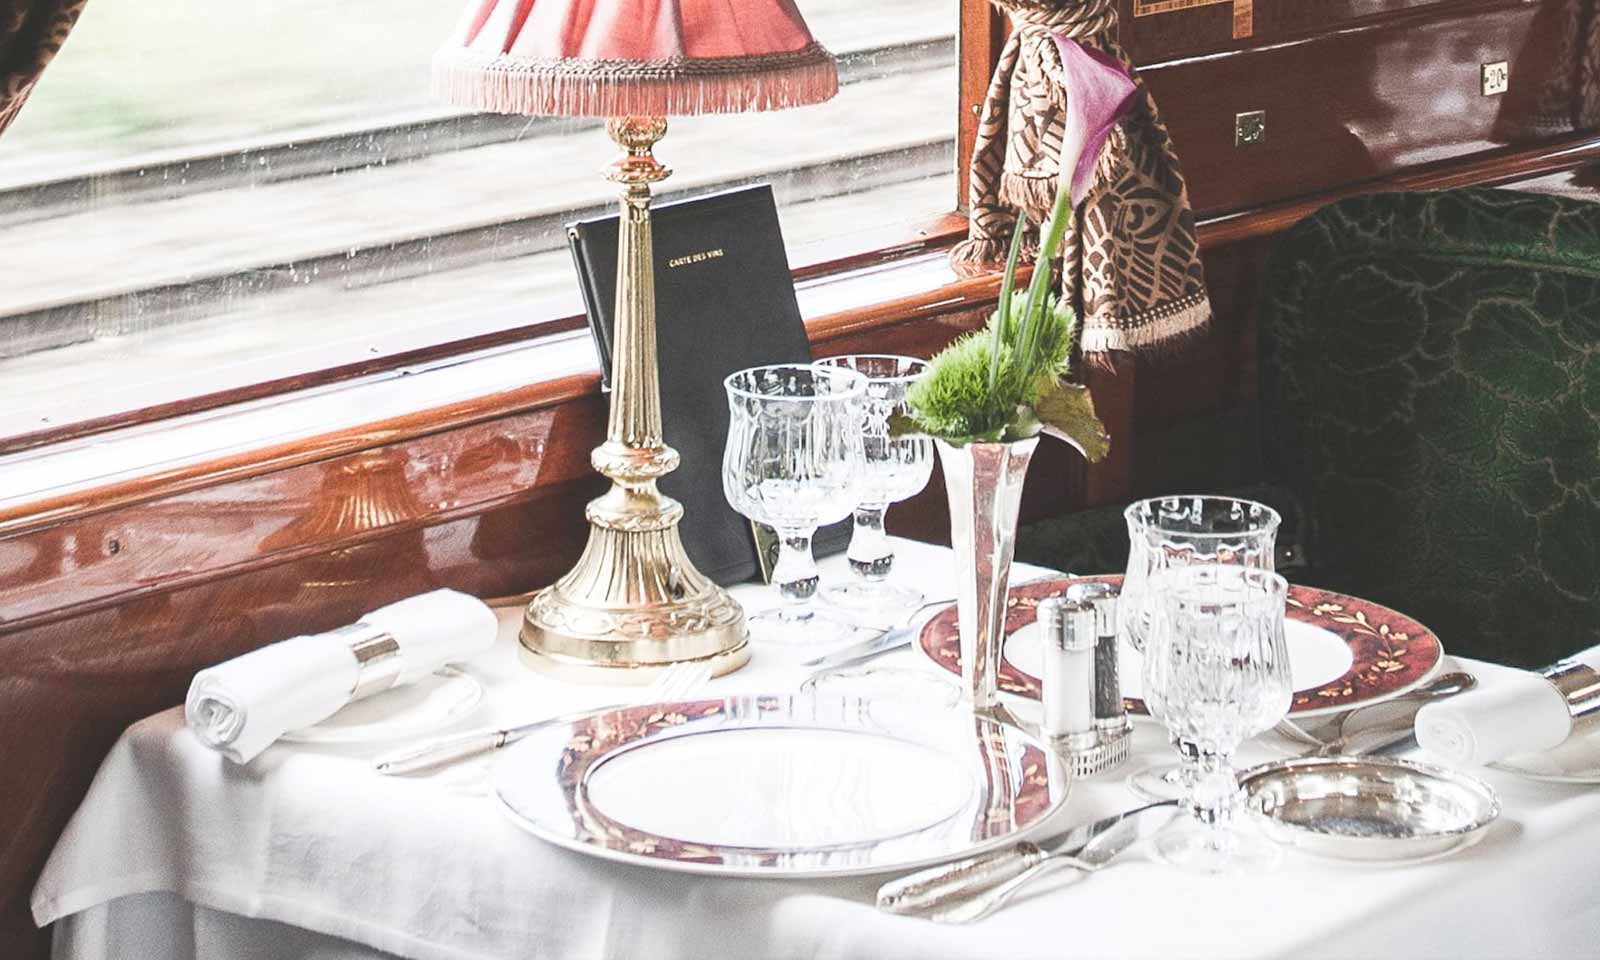 How long does the Orient Express take?